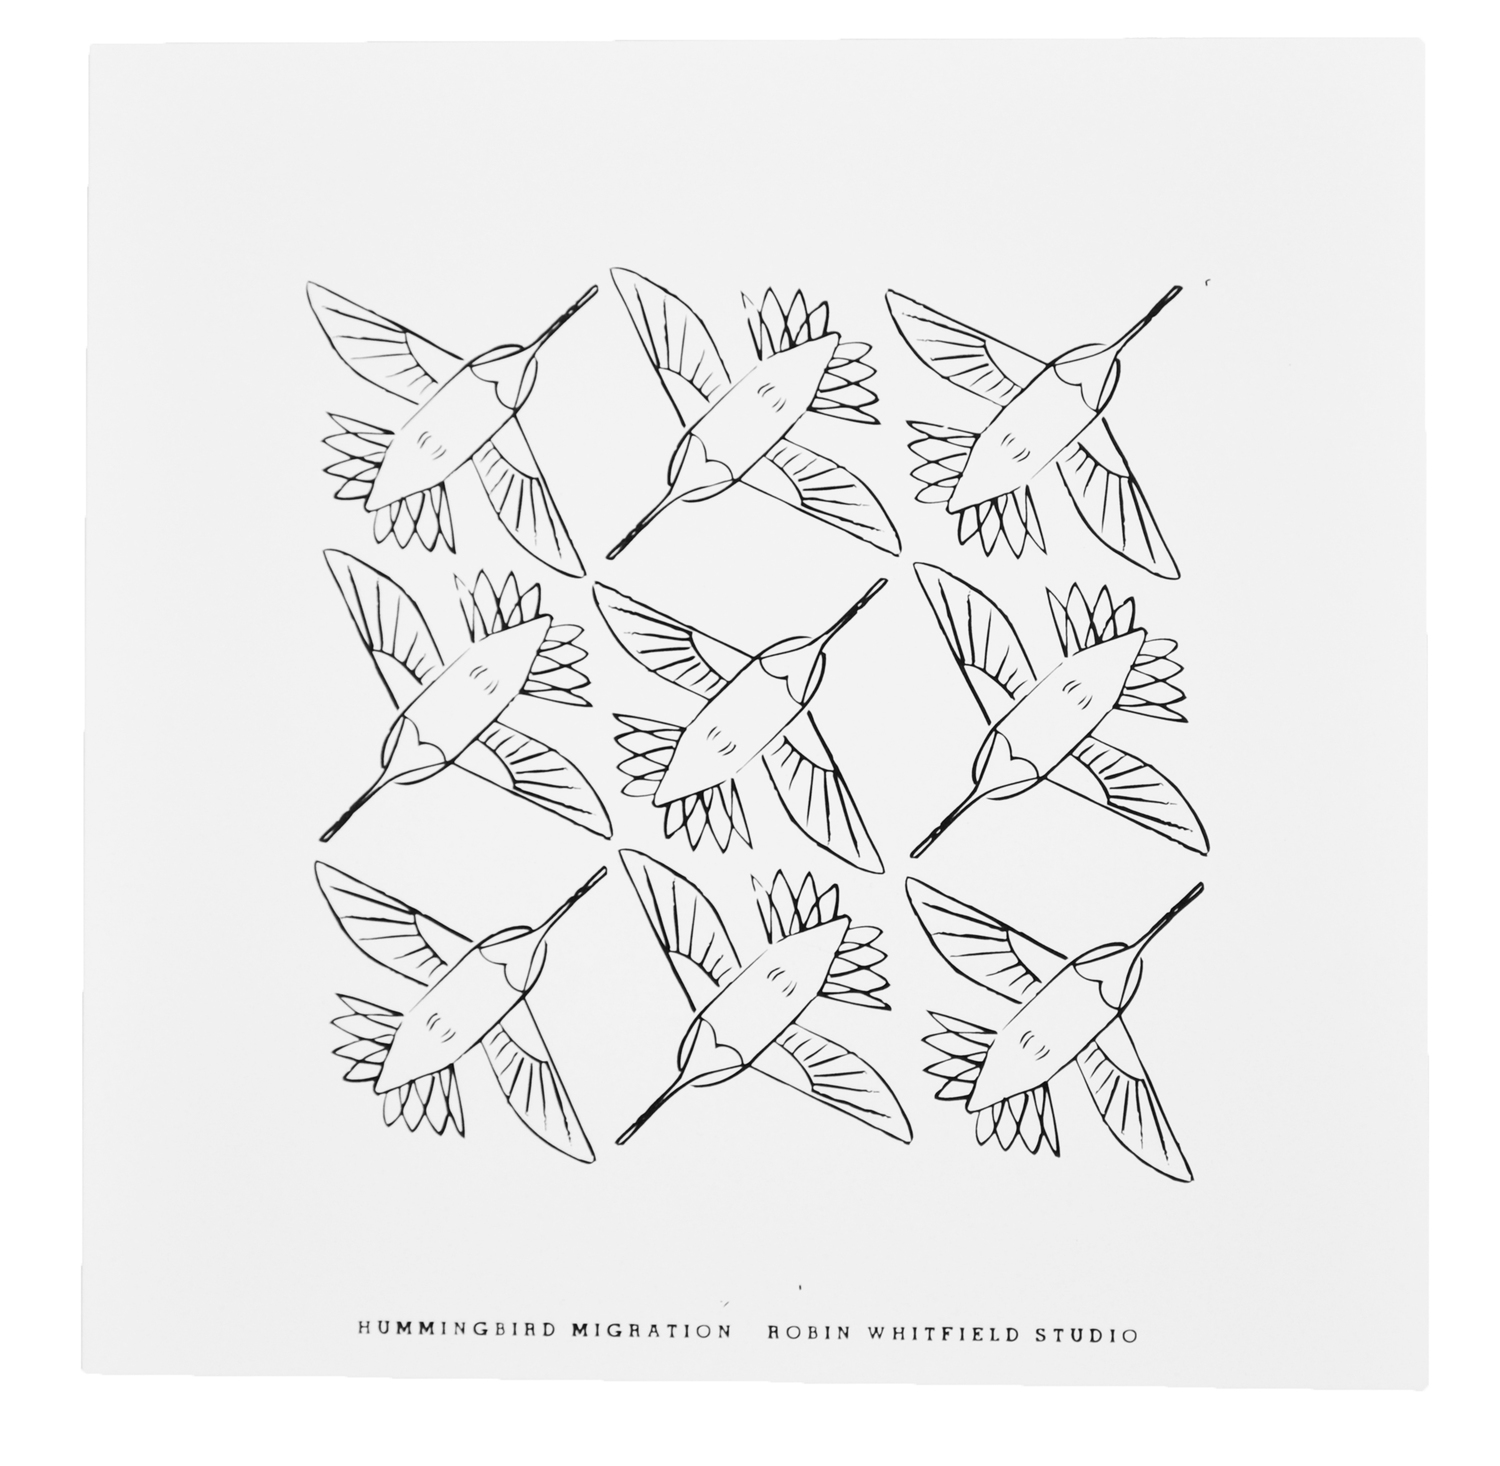 Color Your Own Print Hummingbird Migration Robin